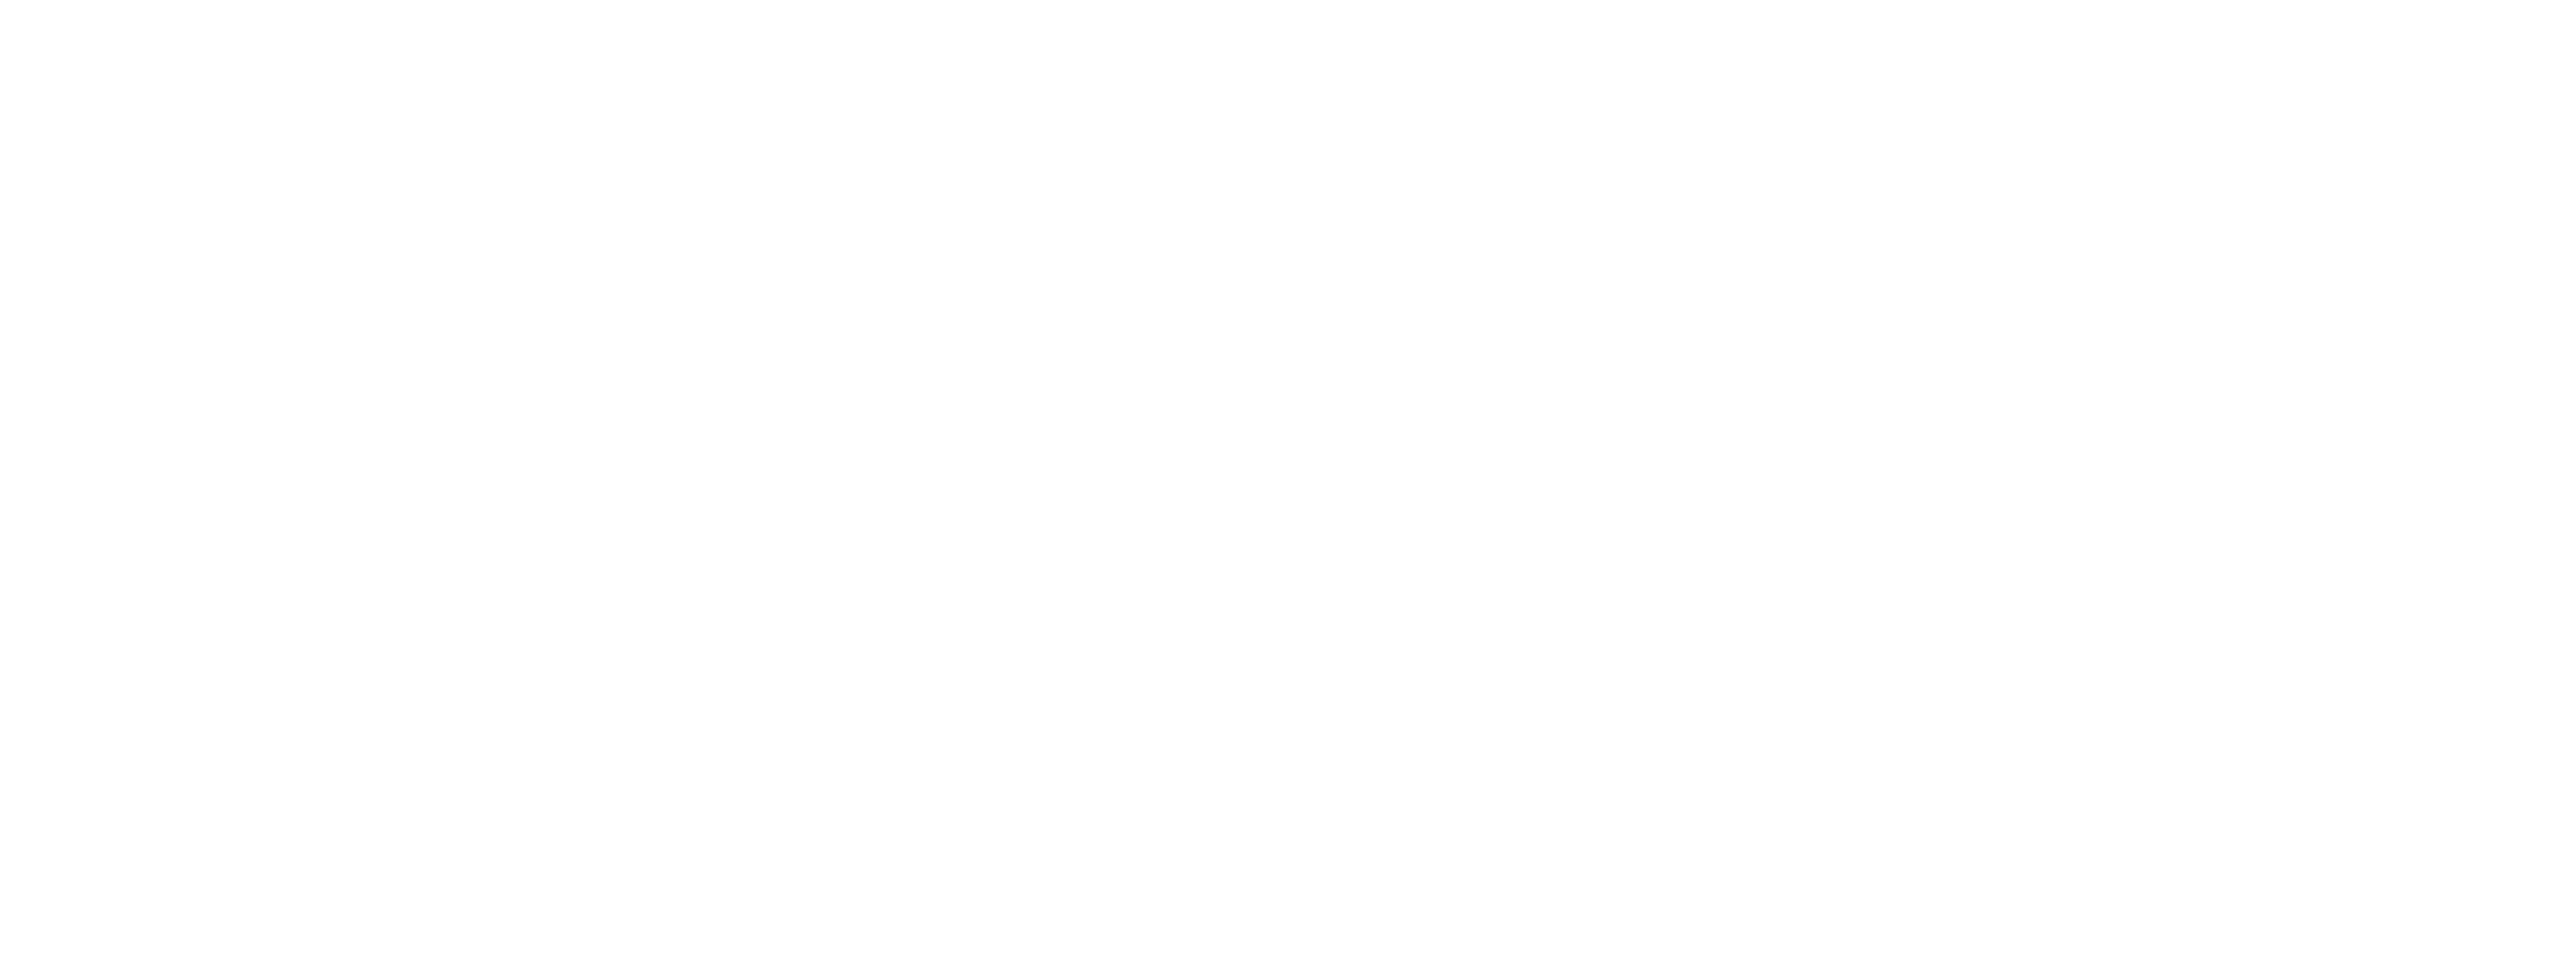 common analytics interview questions analytics magazine common analytics interview questions